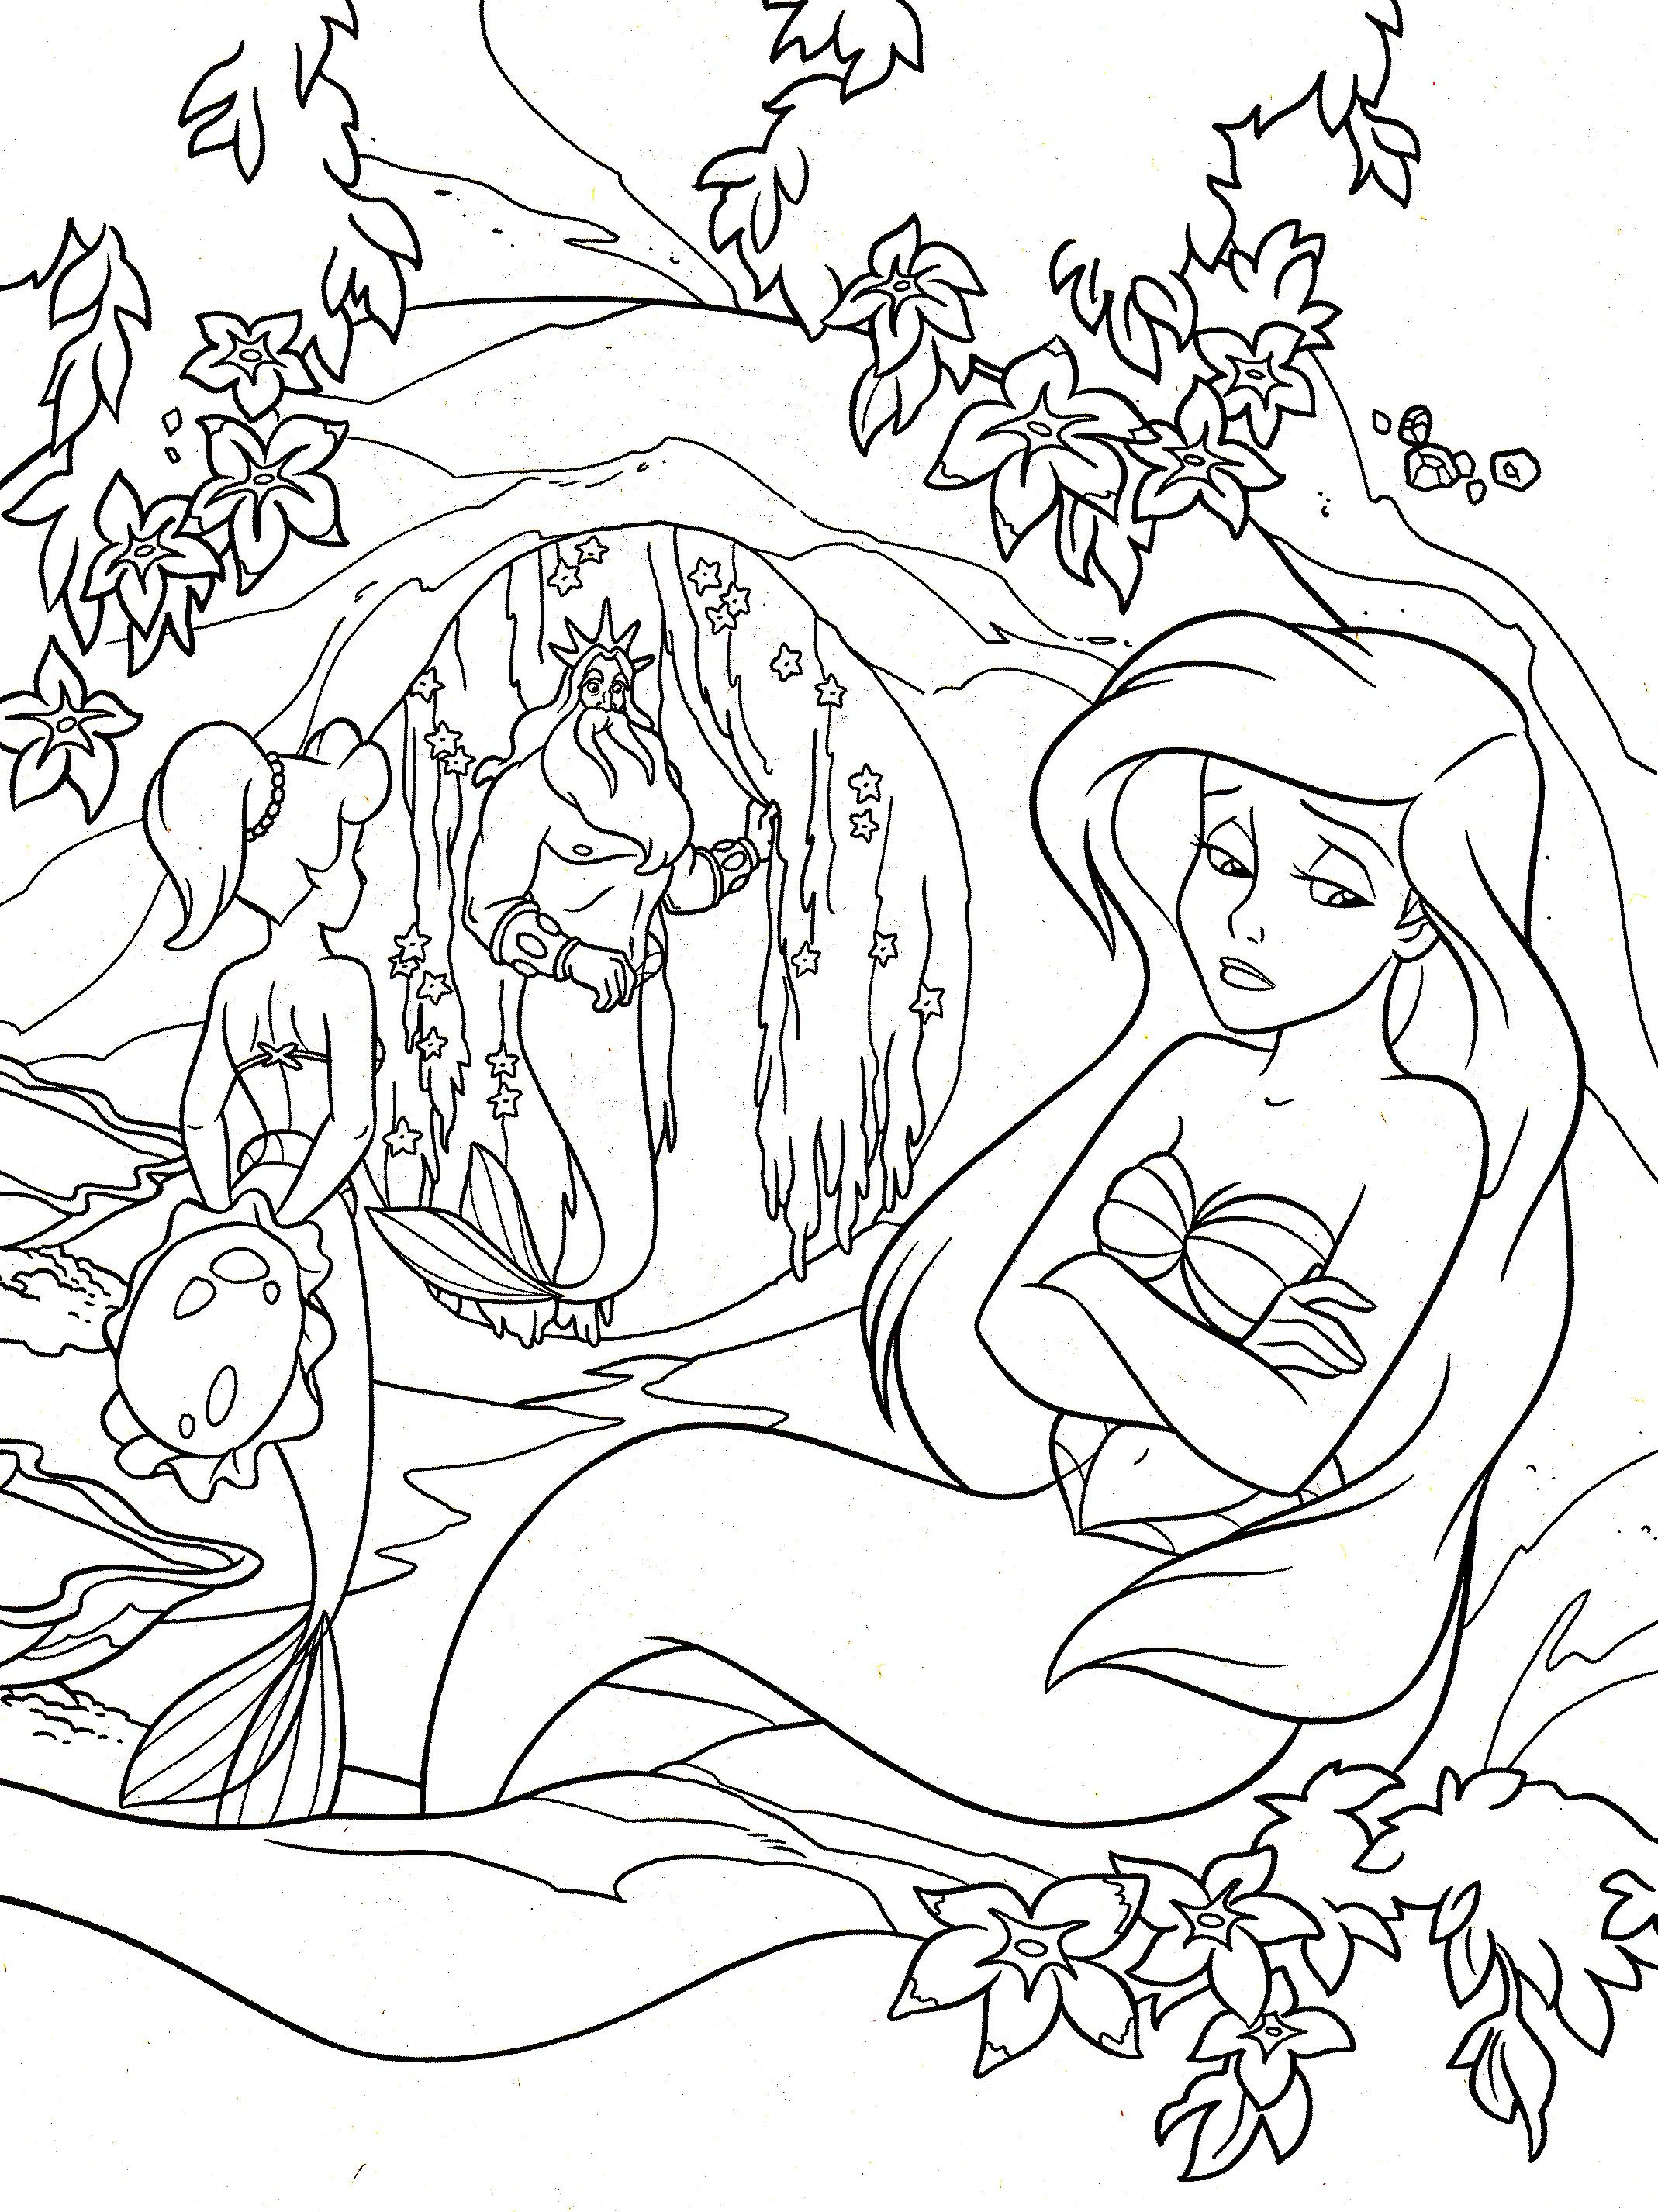 With the coloring pages that follow, we offer you a return to